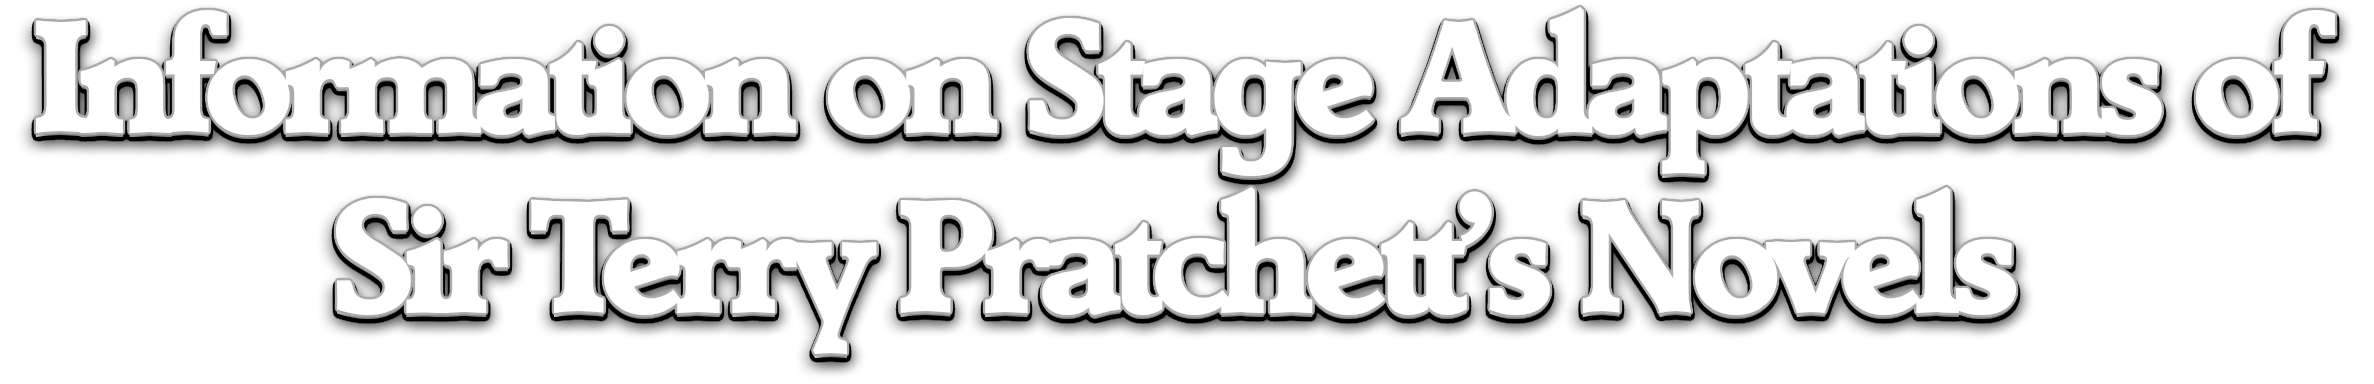 Information on Stage Adaptations